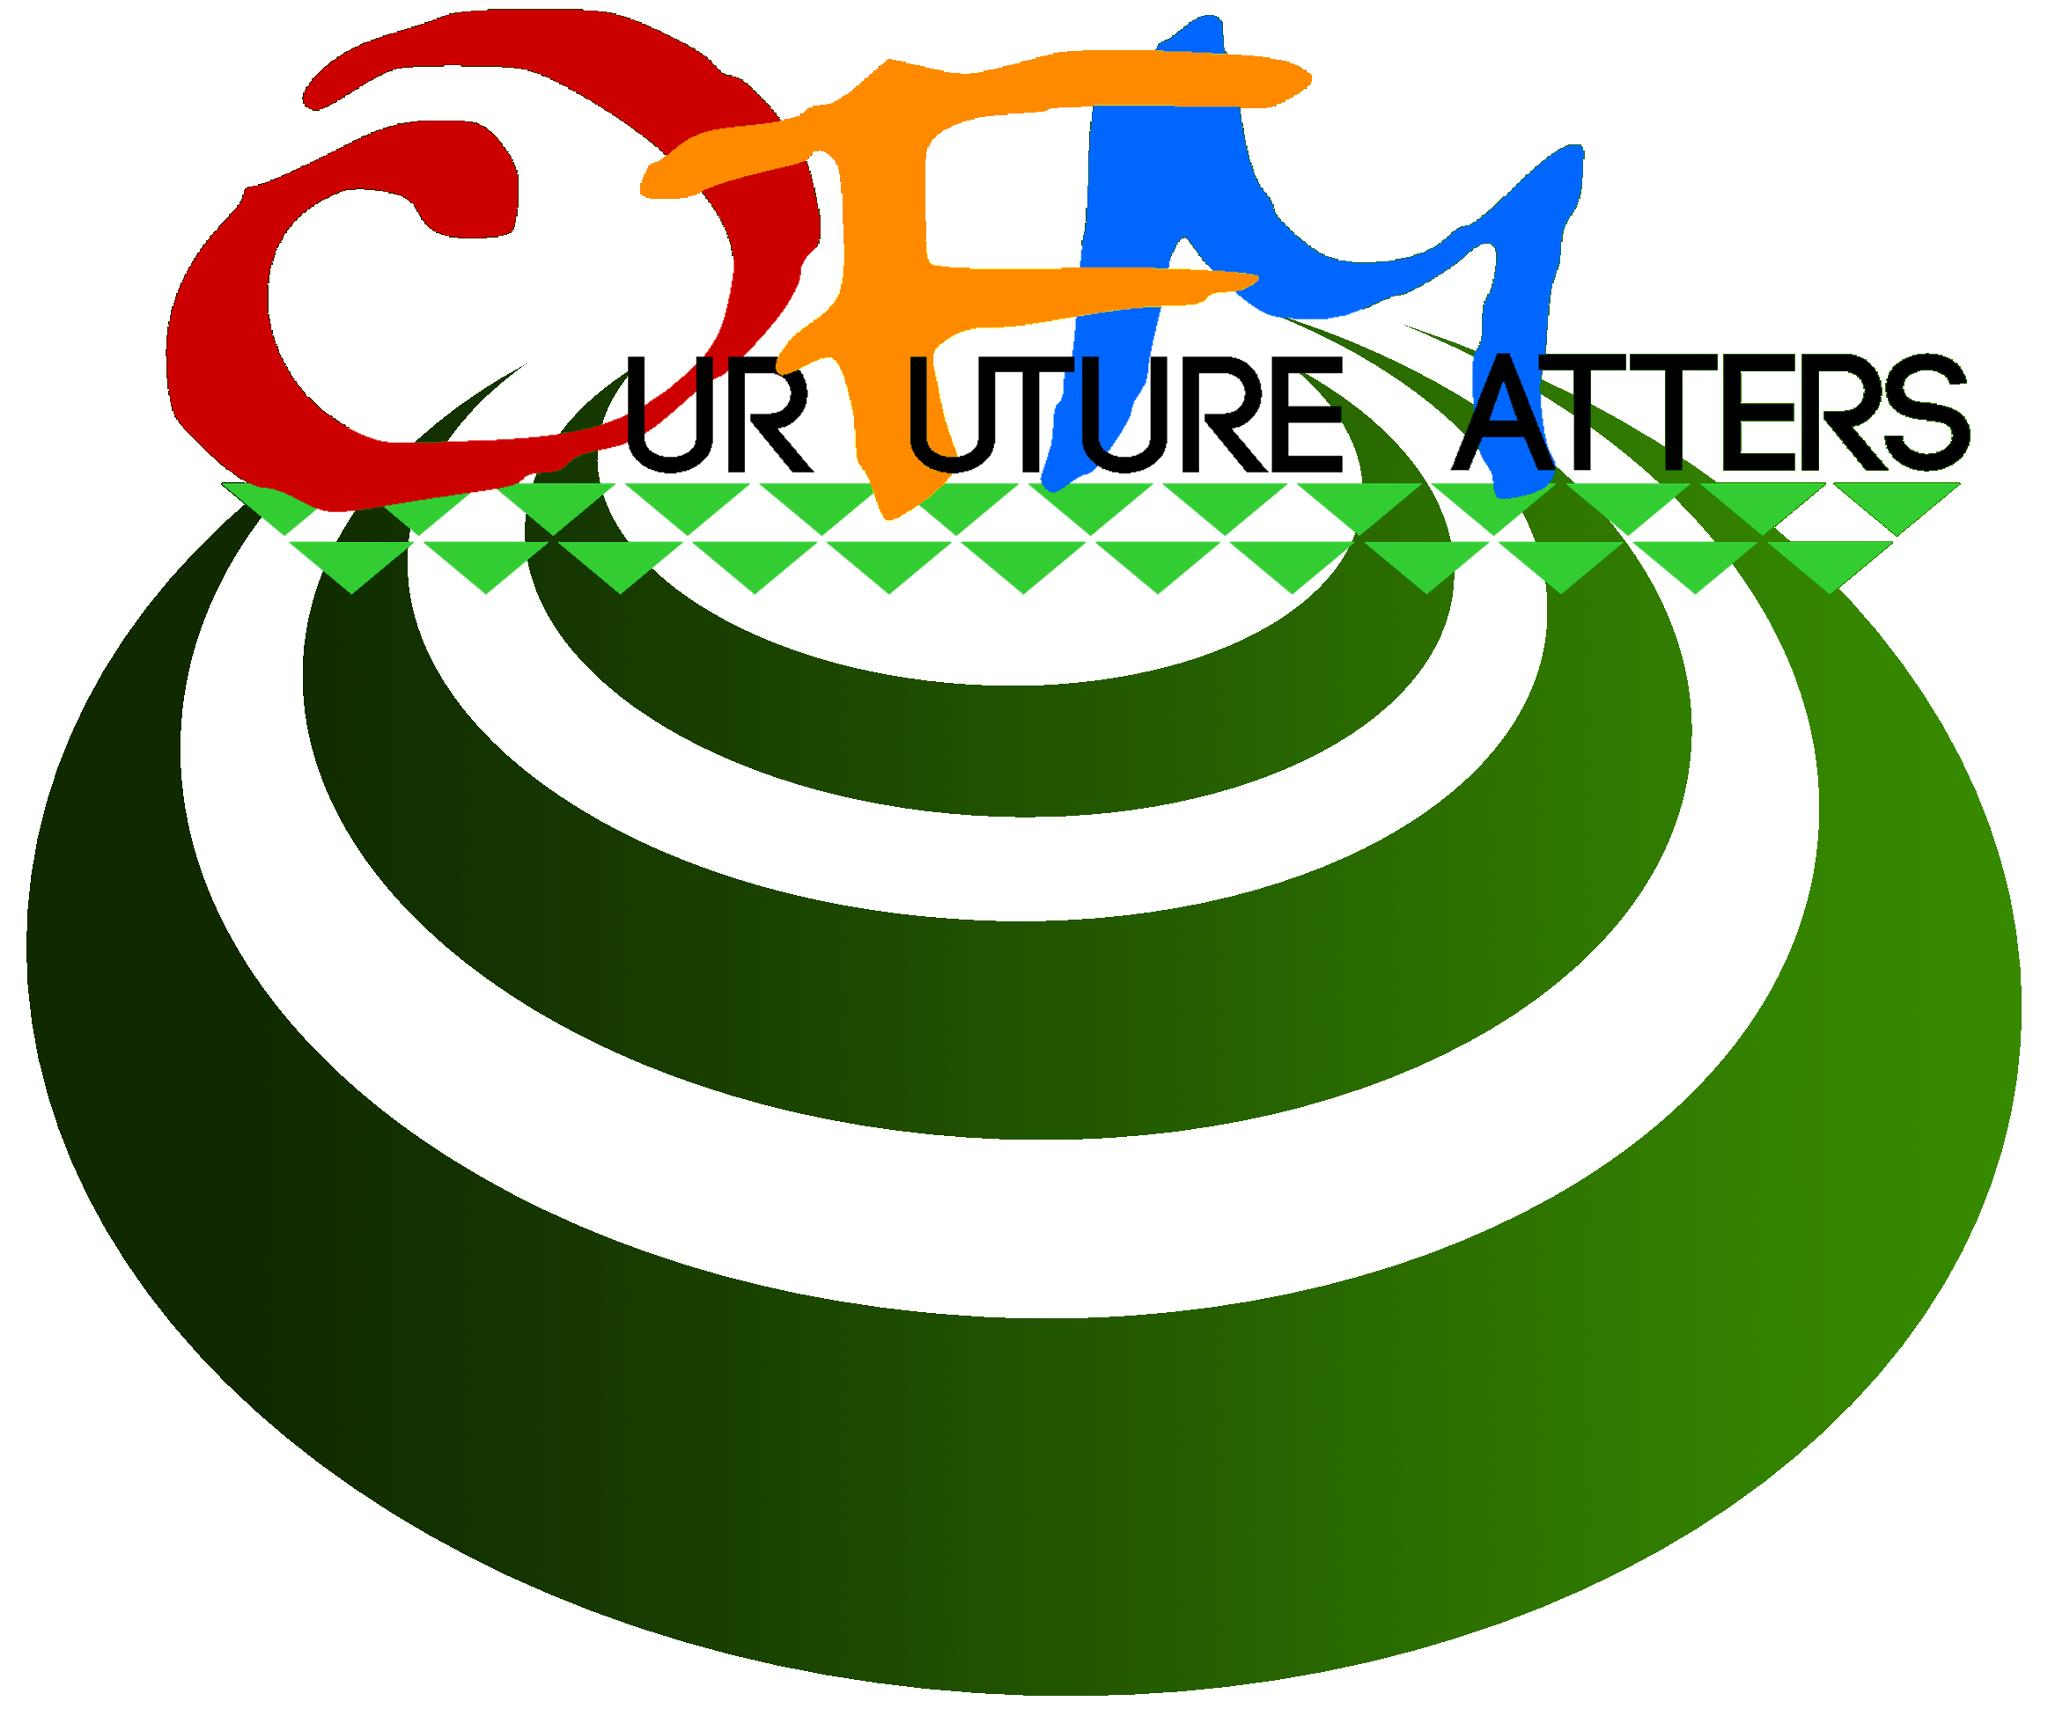 Our Future Matters